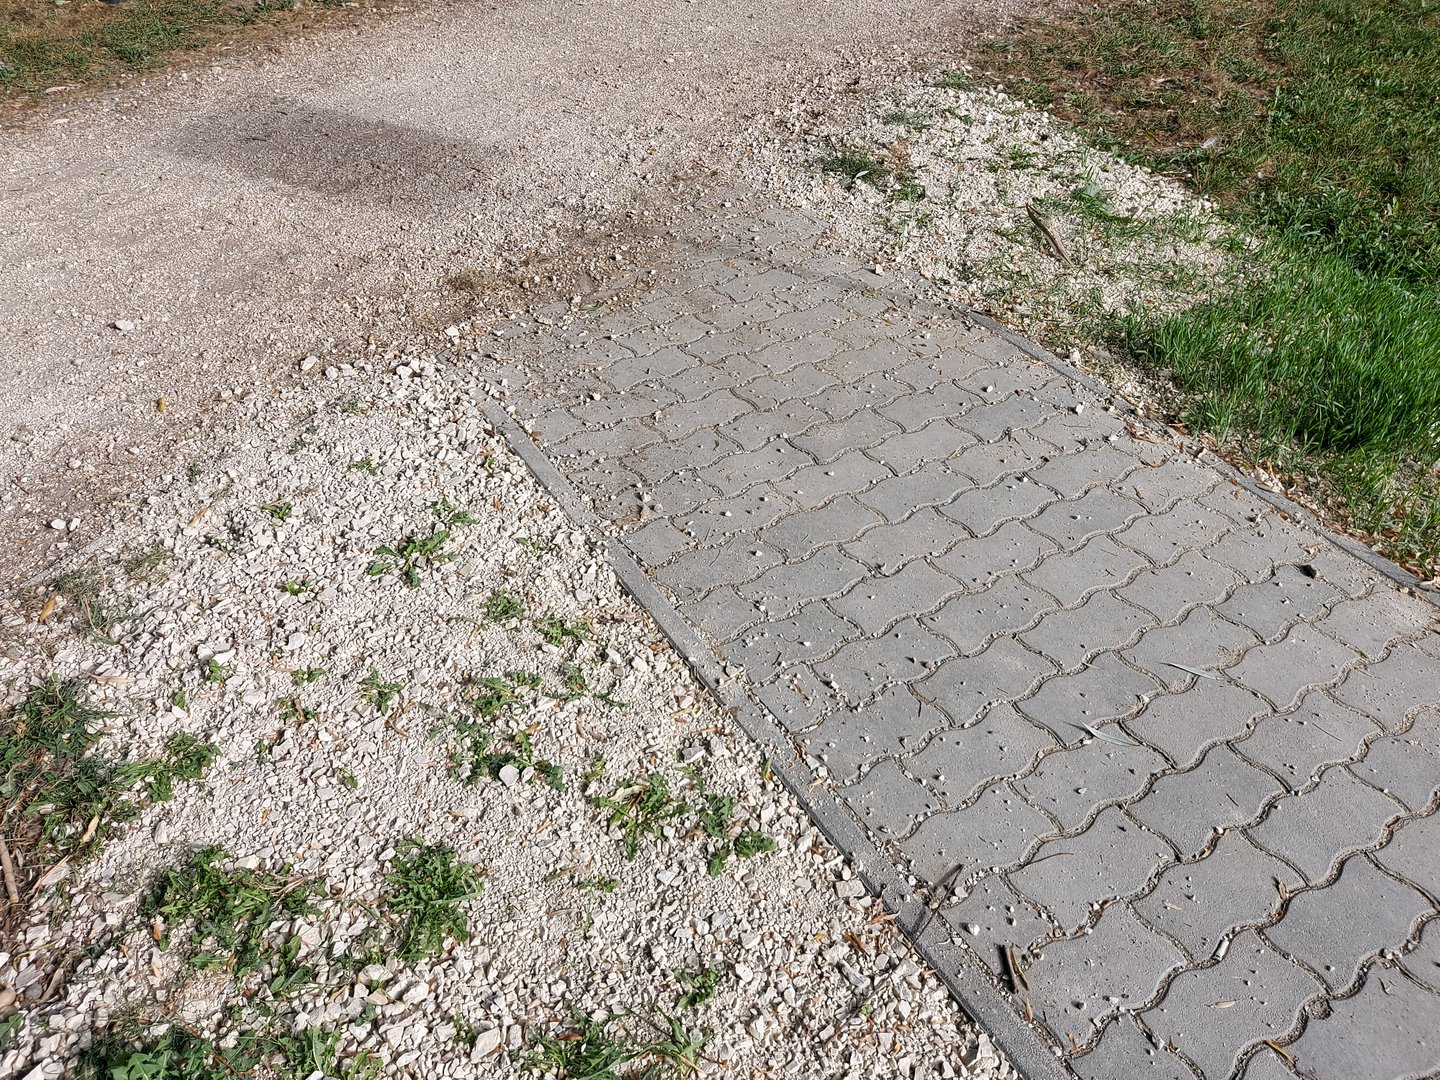 Free area for turning with wheelchair